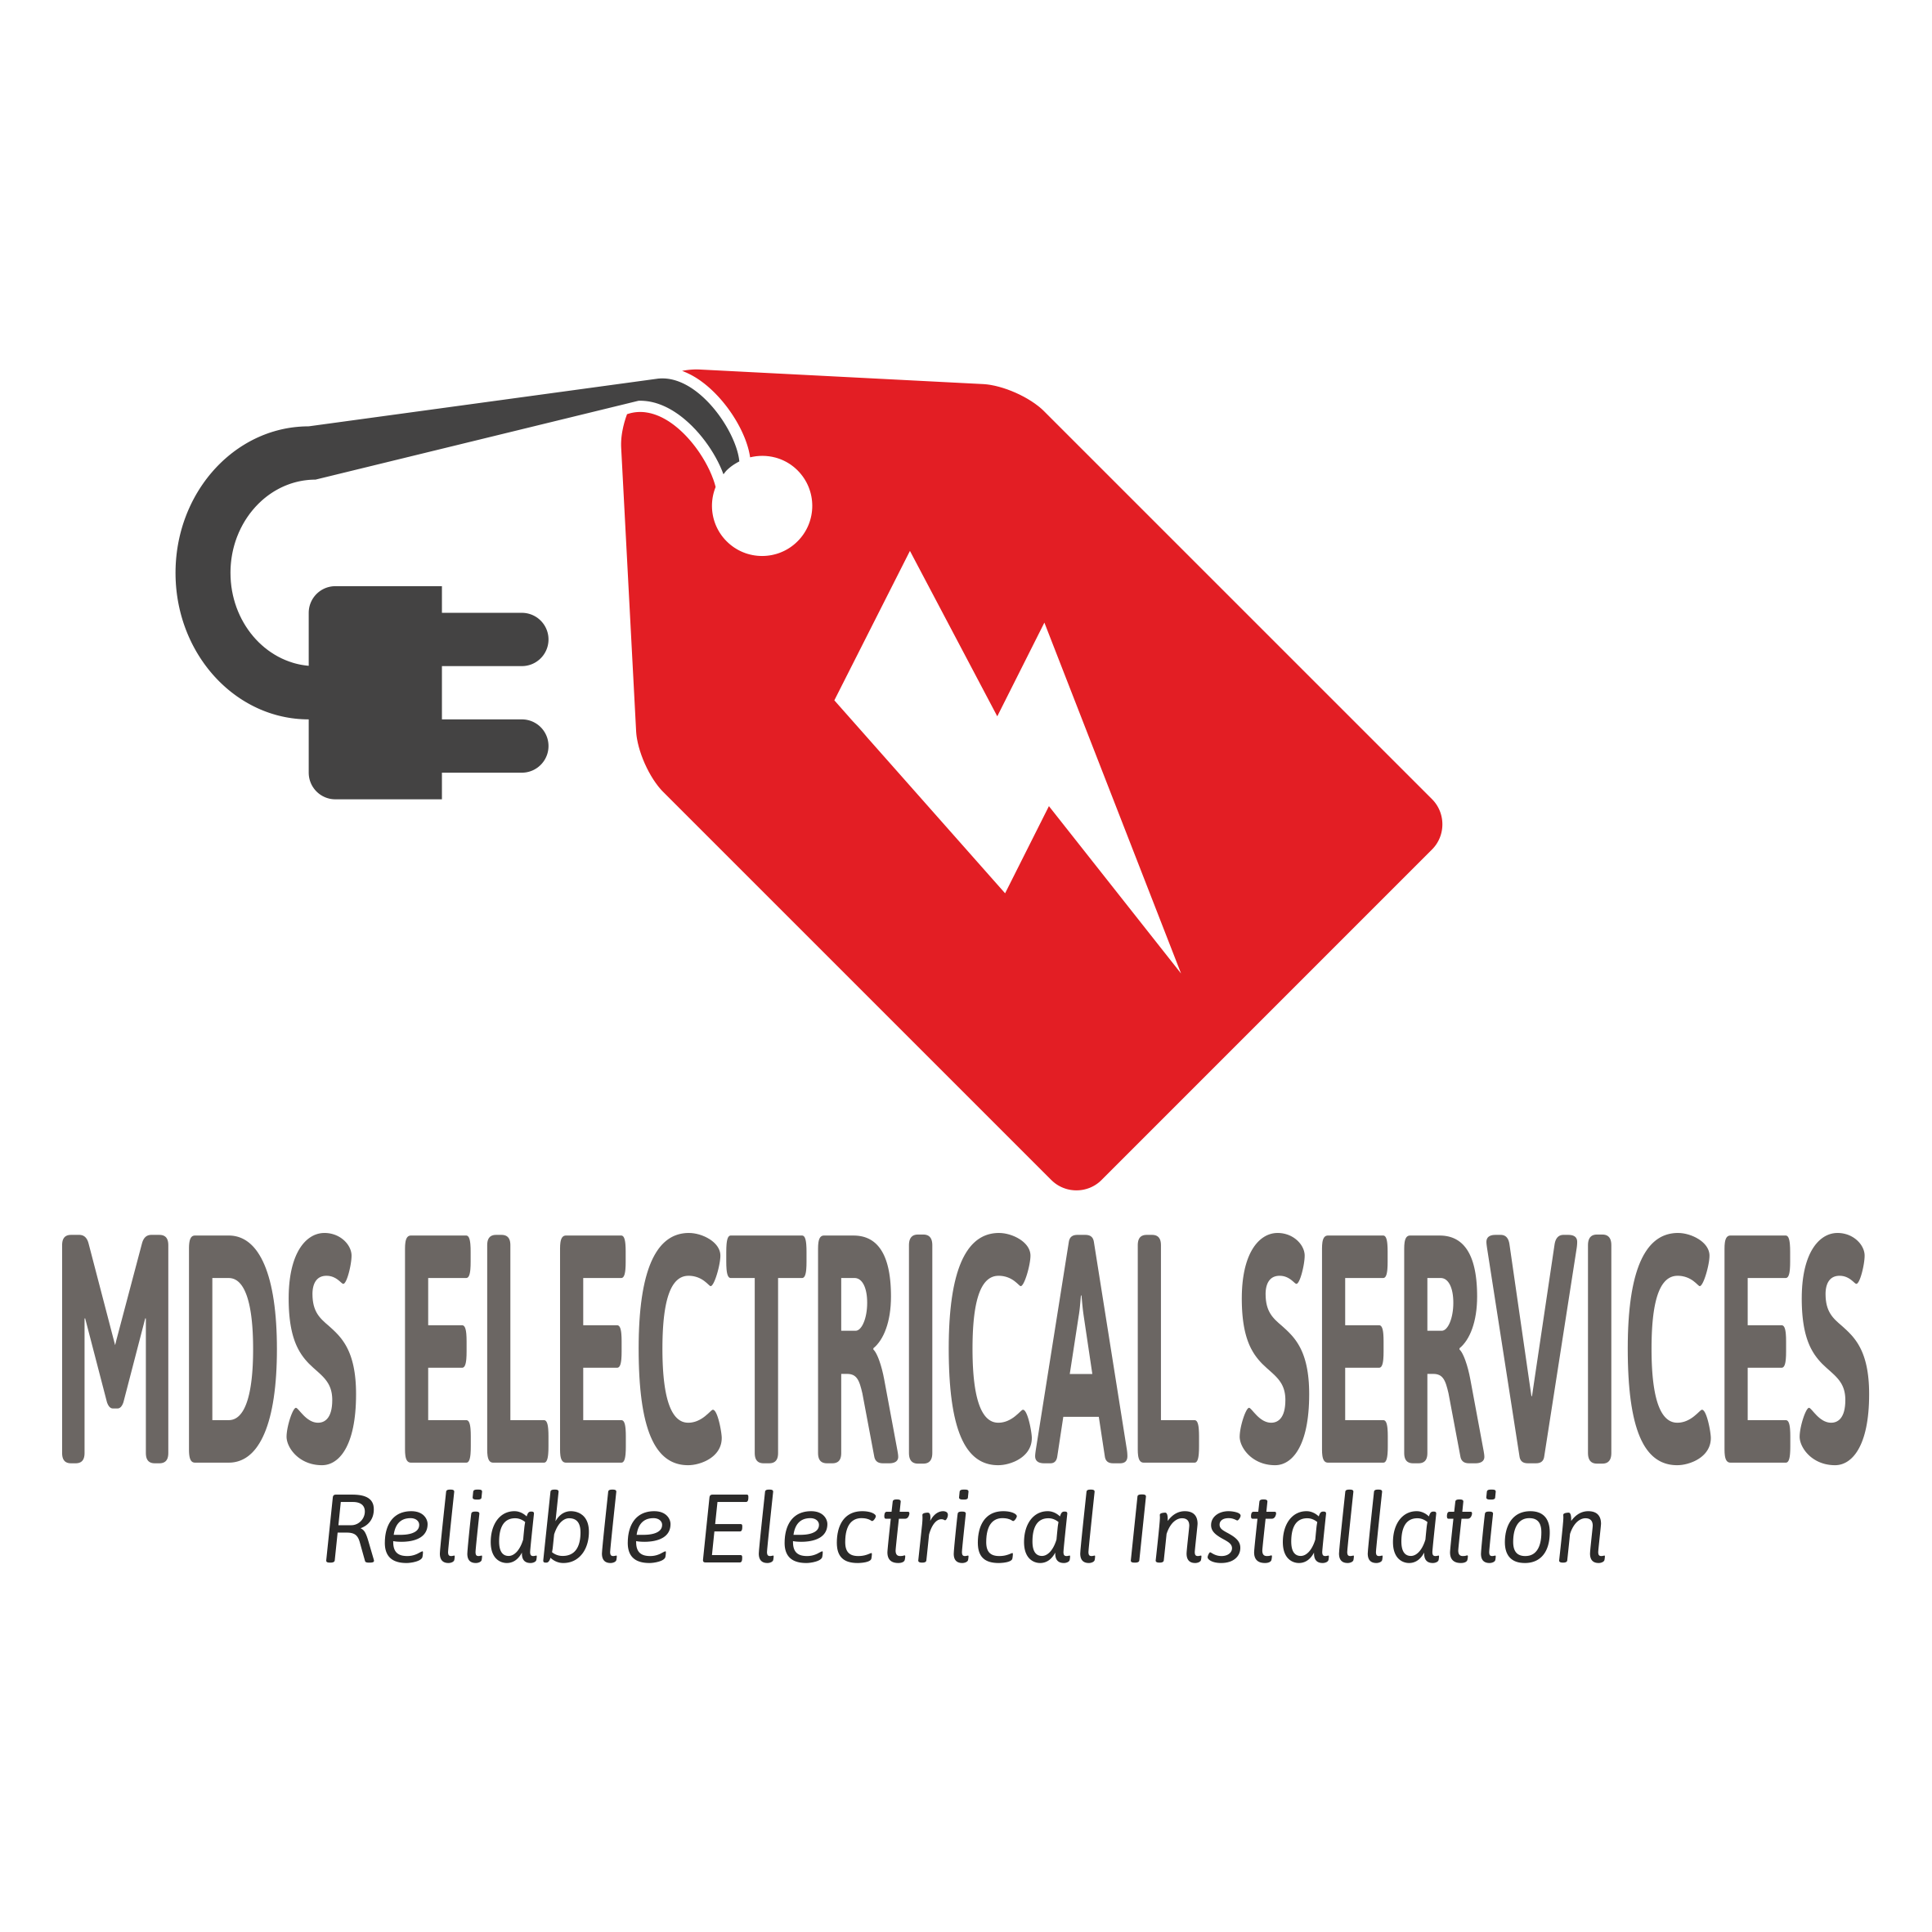 MDS Electrical Services Ltd